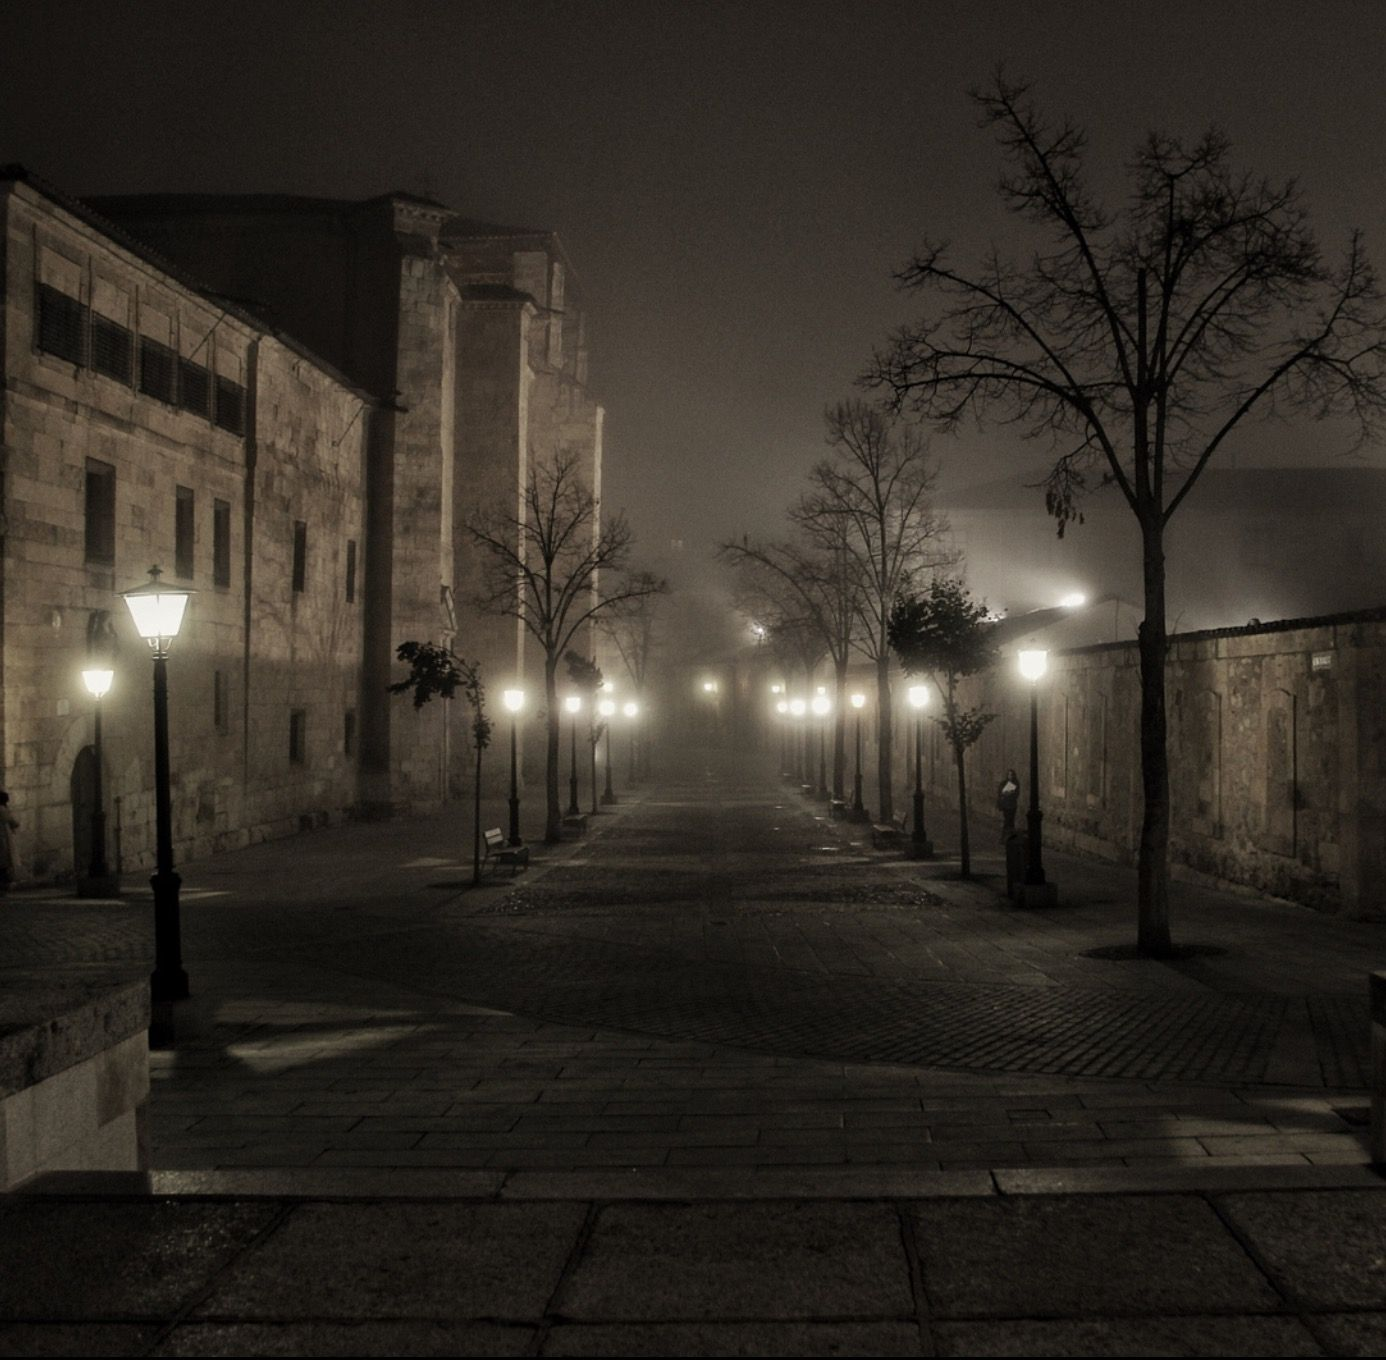 Foggy night  by Daniel de Arriba (Salamanca, Spain)